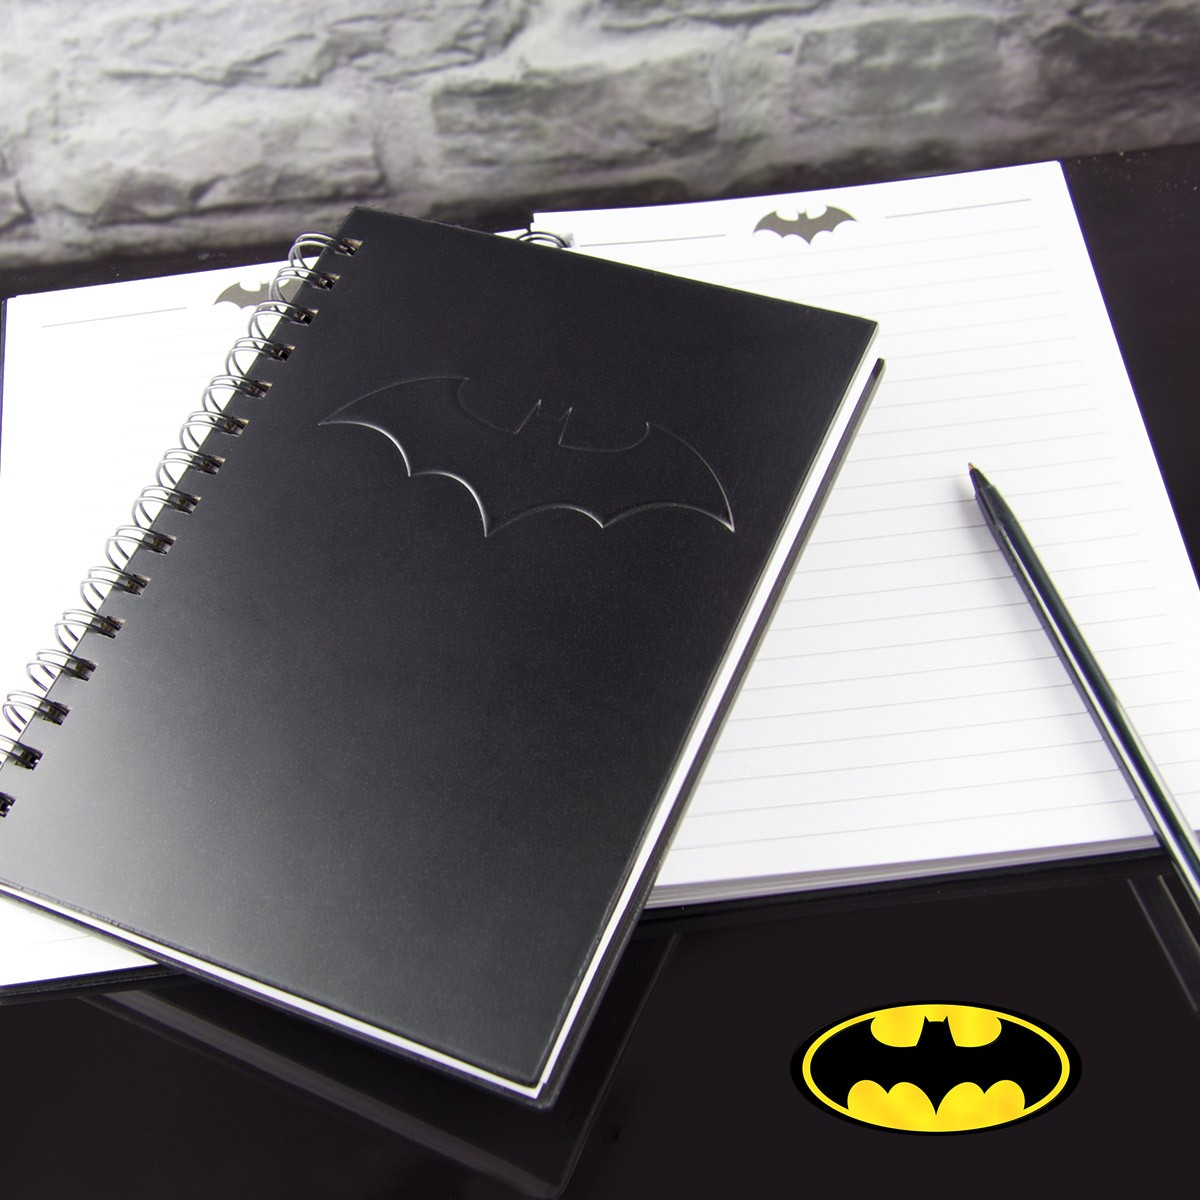 carnet de notes noir sous licence officielle batman sur logeekdesign. Black Bedroom Furniture Sets. Home Design Ideas